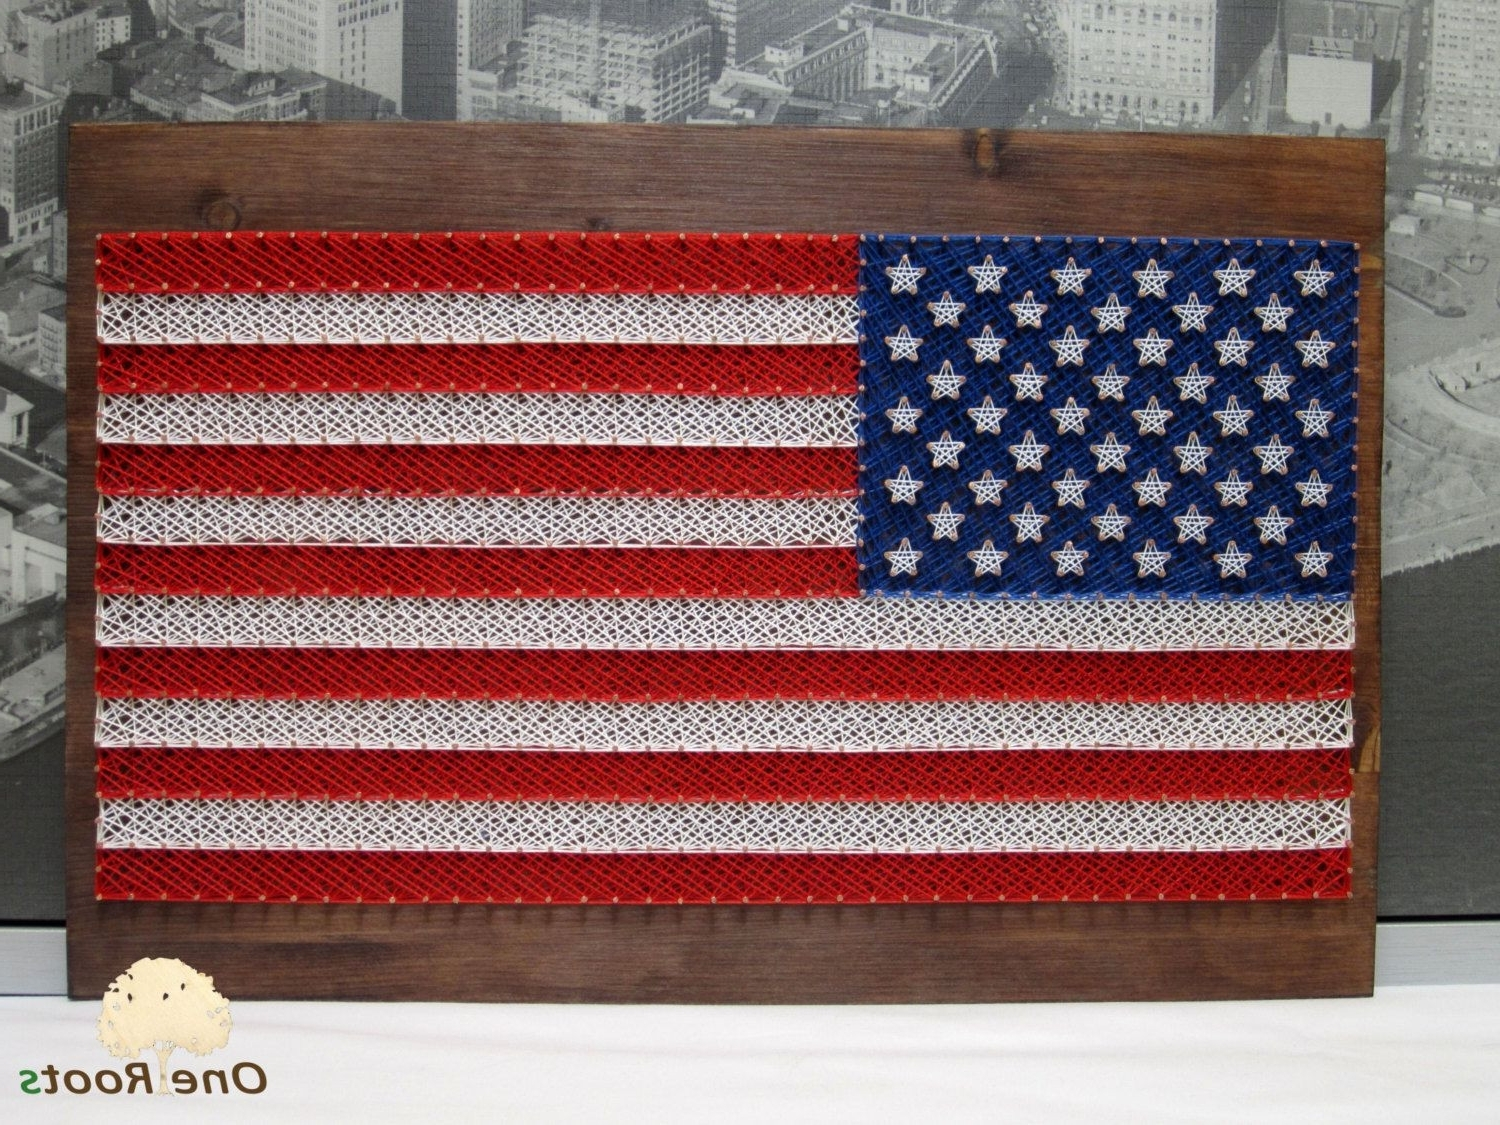 Vintage American Flag Wall Art Inside Recent String Art American Flag Usa Wall Arteroots On Etsy S Design (View 15 of 15)